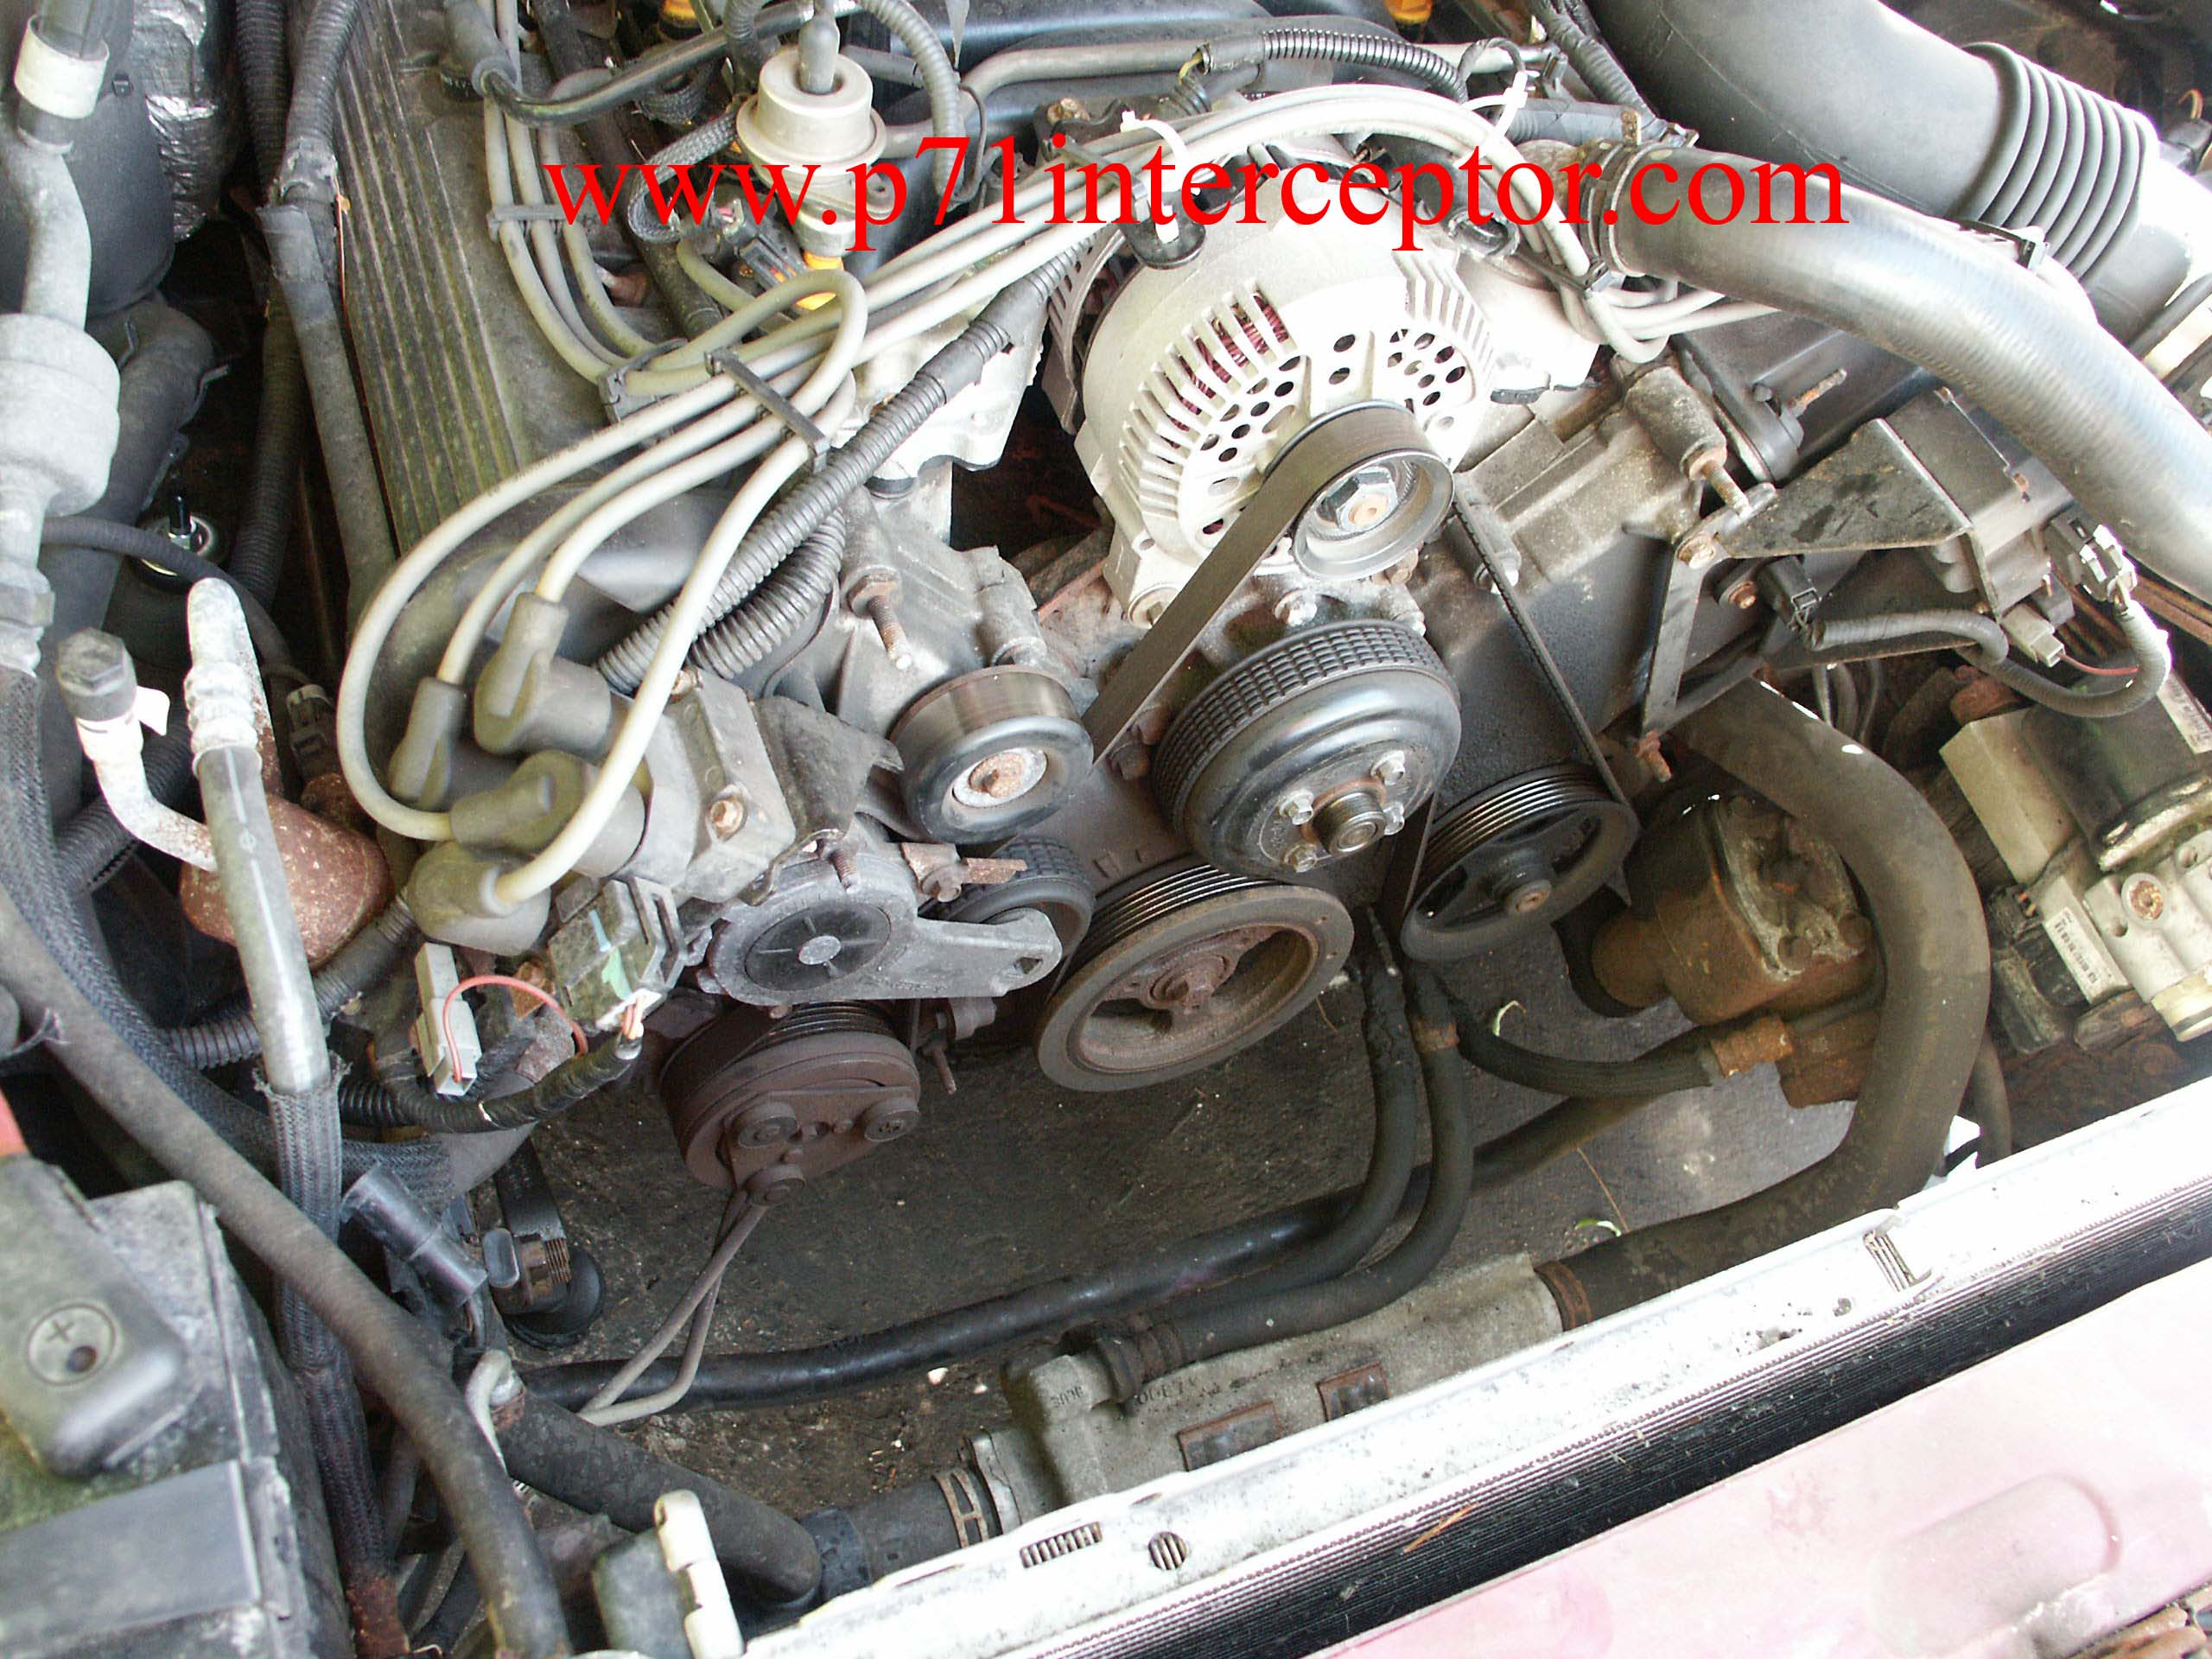 Crown Vic Engine Diagram Free Wiring For You 1997 Ford F350 Download Victoria Power Steering Pump Replacement Rh Idmsvcs Com 2010 2003